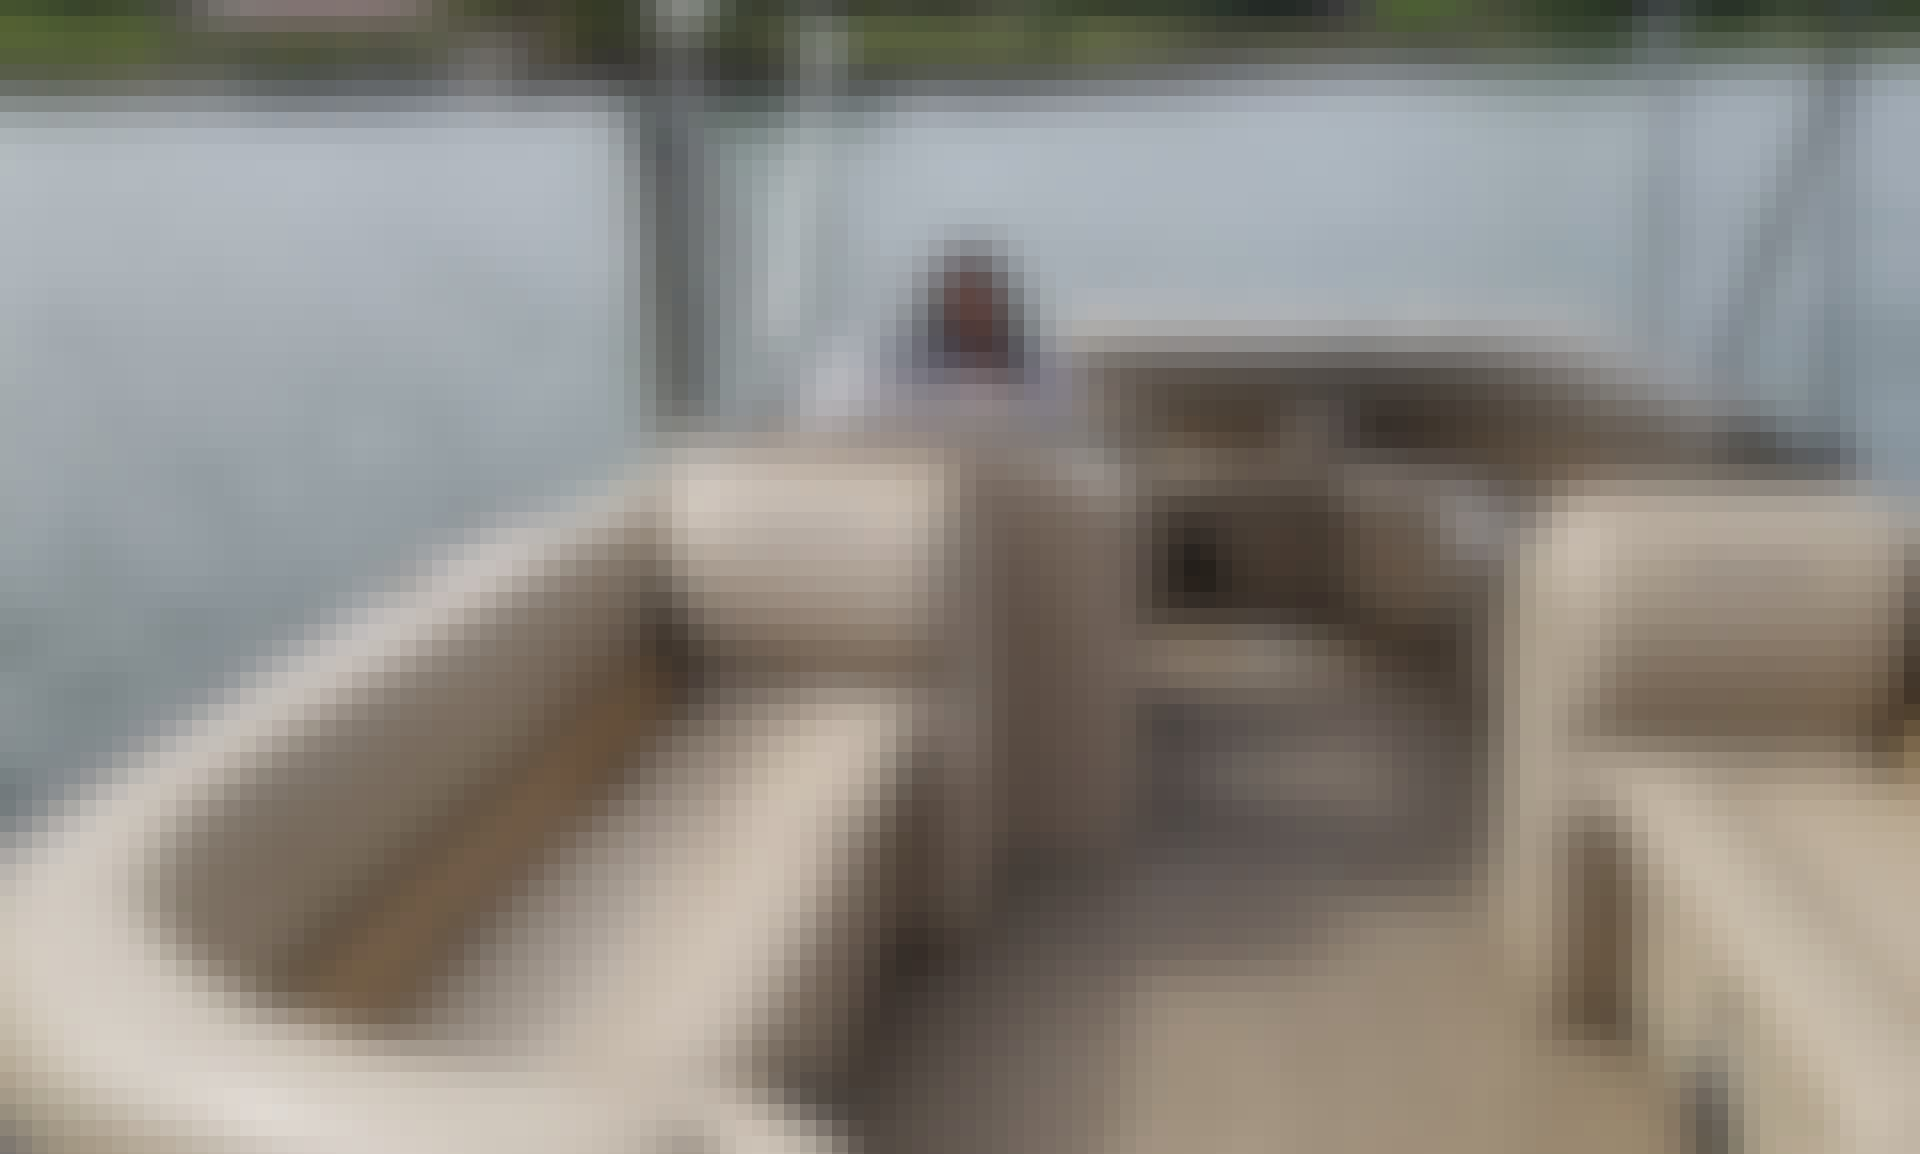 2019 Bentley 24' Pontoon boats on Lake Norman North Carolina